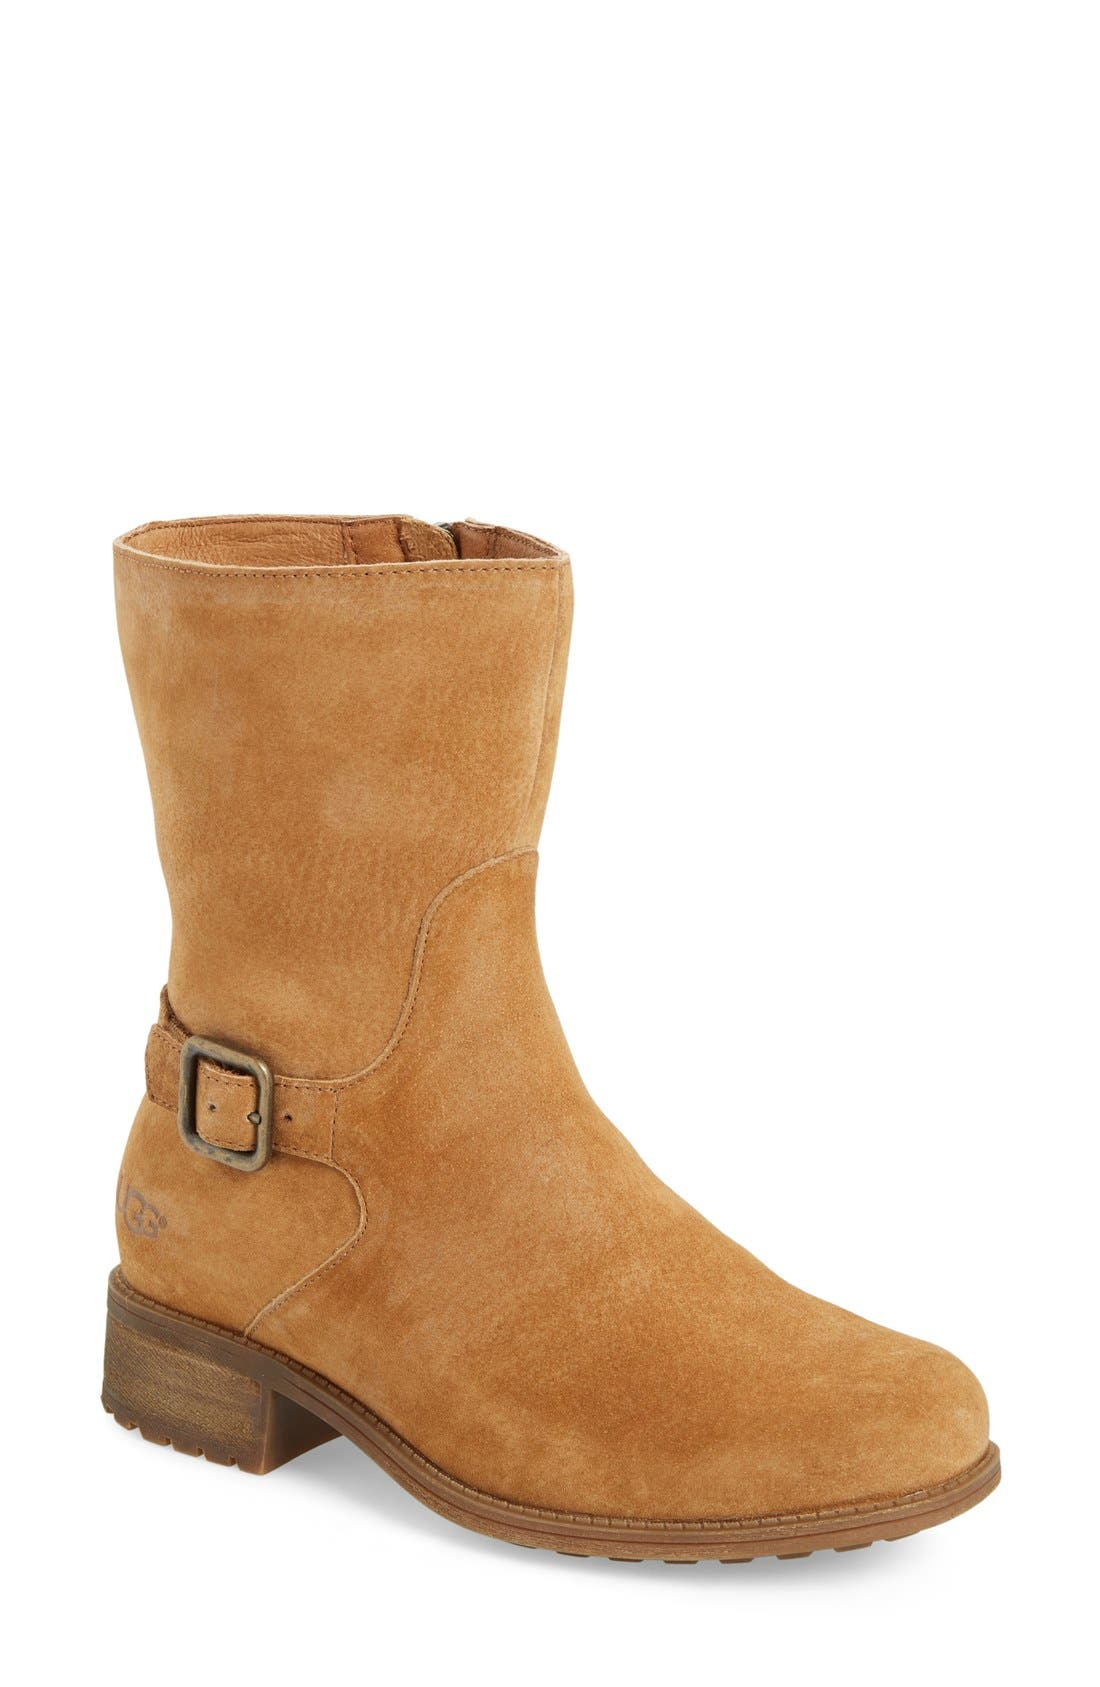 Alternate Image 1 Selected - UGG® Keppler Genuine Shearling Lined Moto Boot (Women)